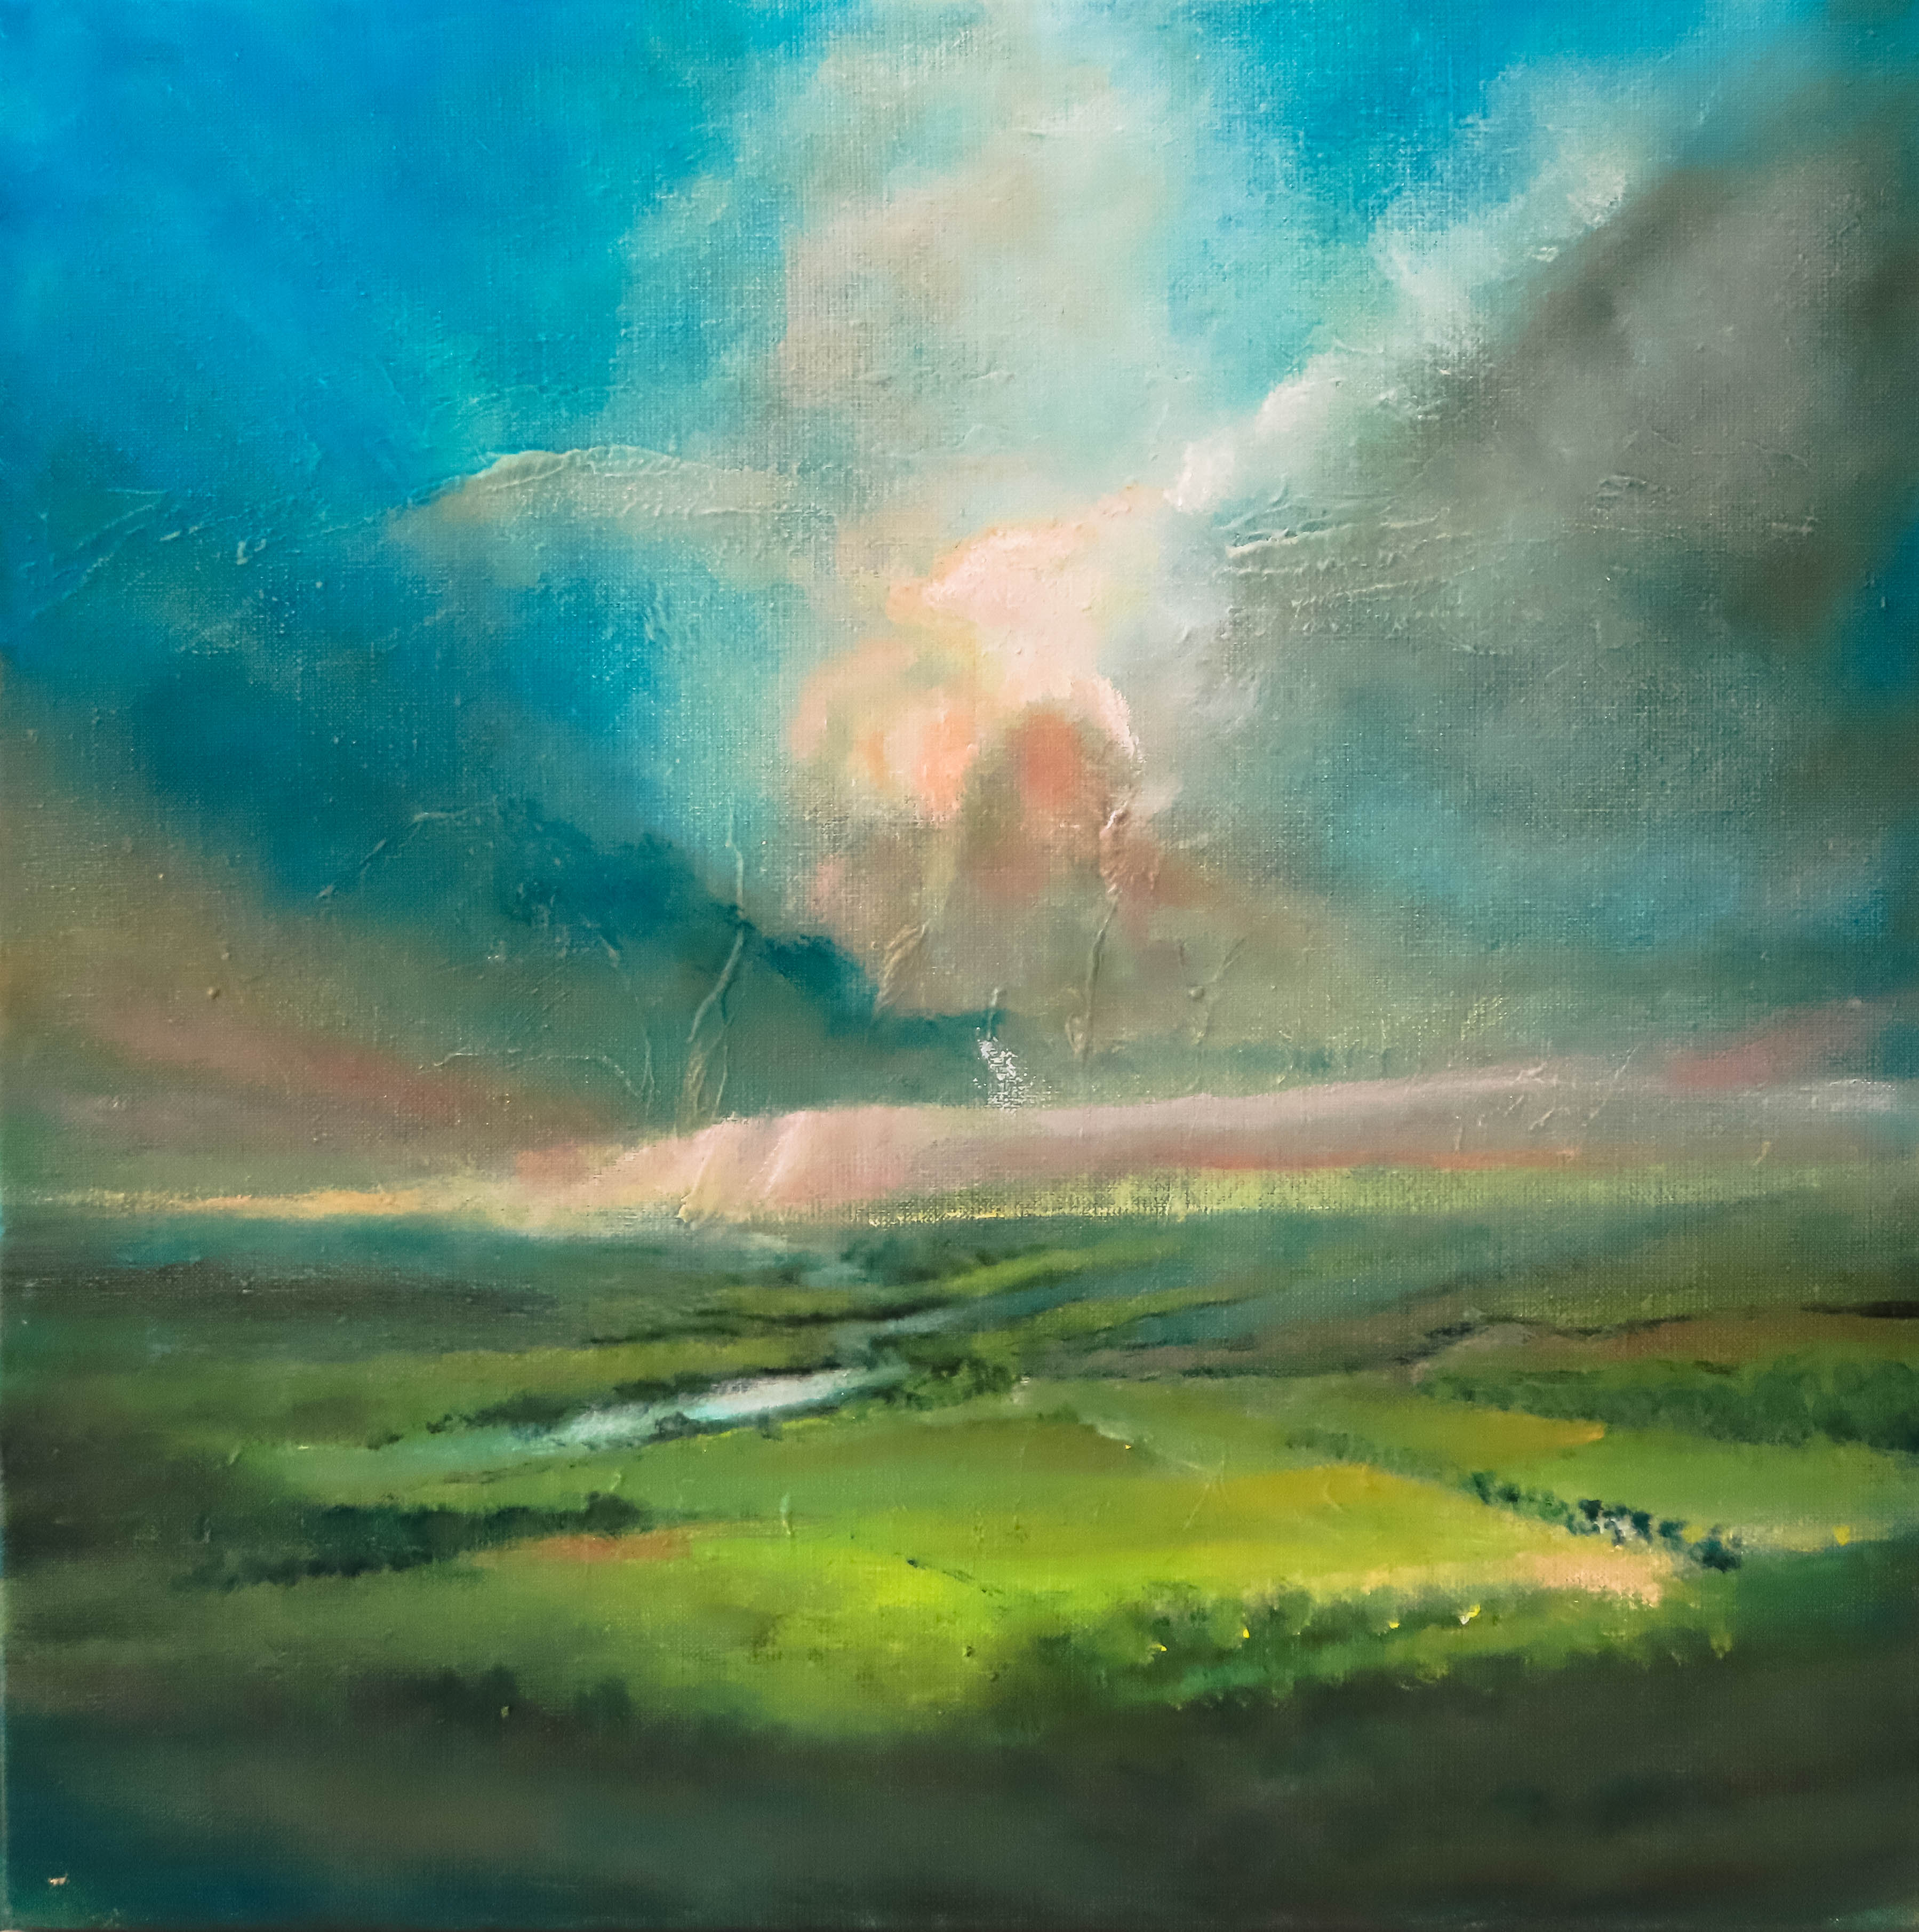 Skyscape IX - A storm is coming